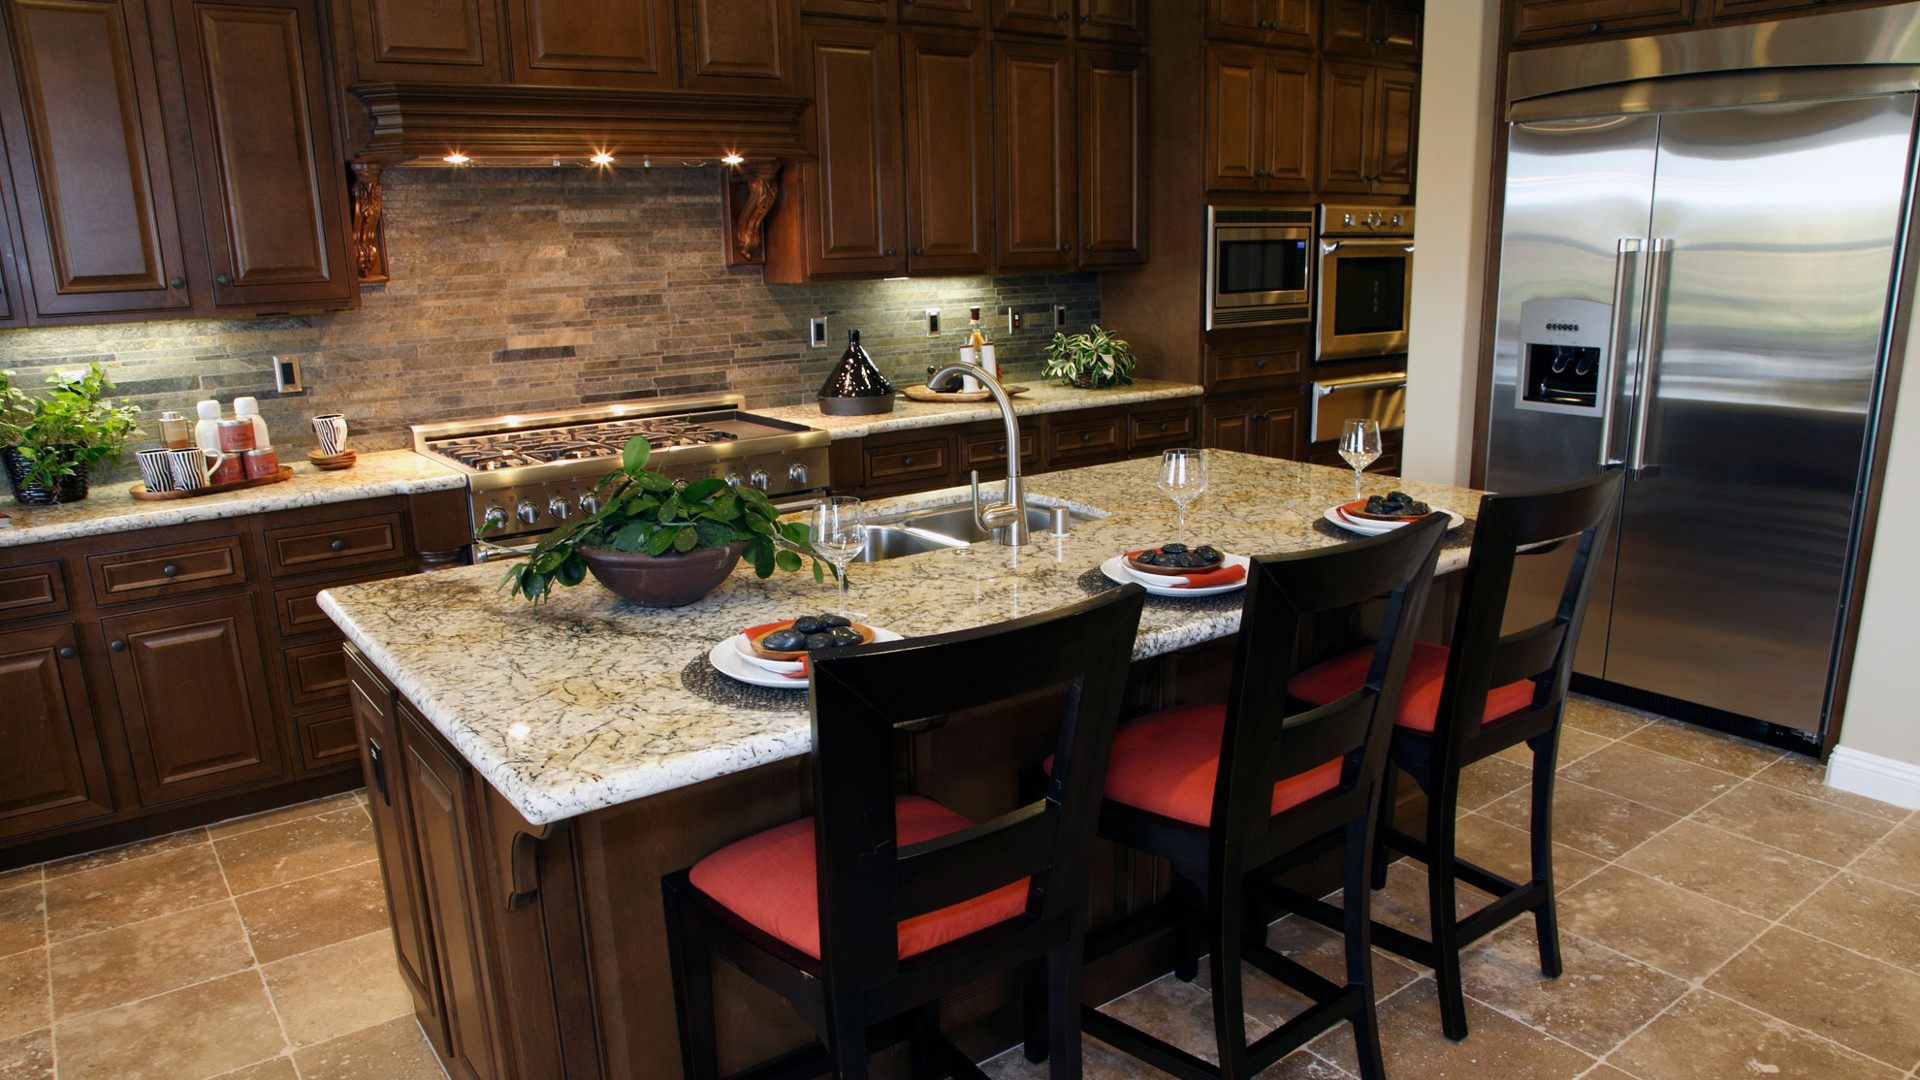 How Can You Use A White Gloss Kitchen Worktop With Other Colors?